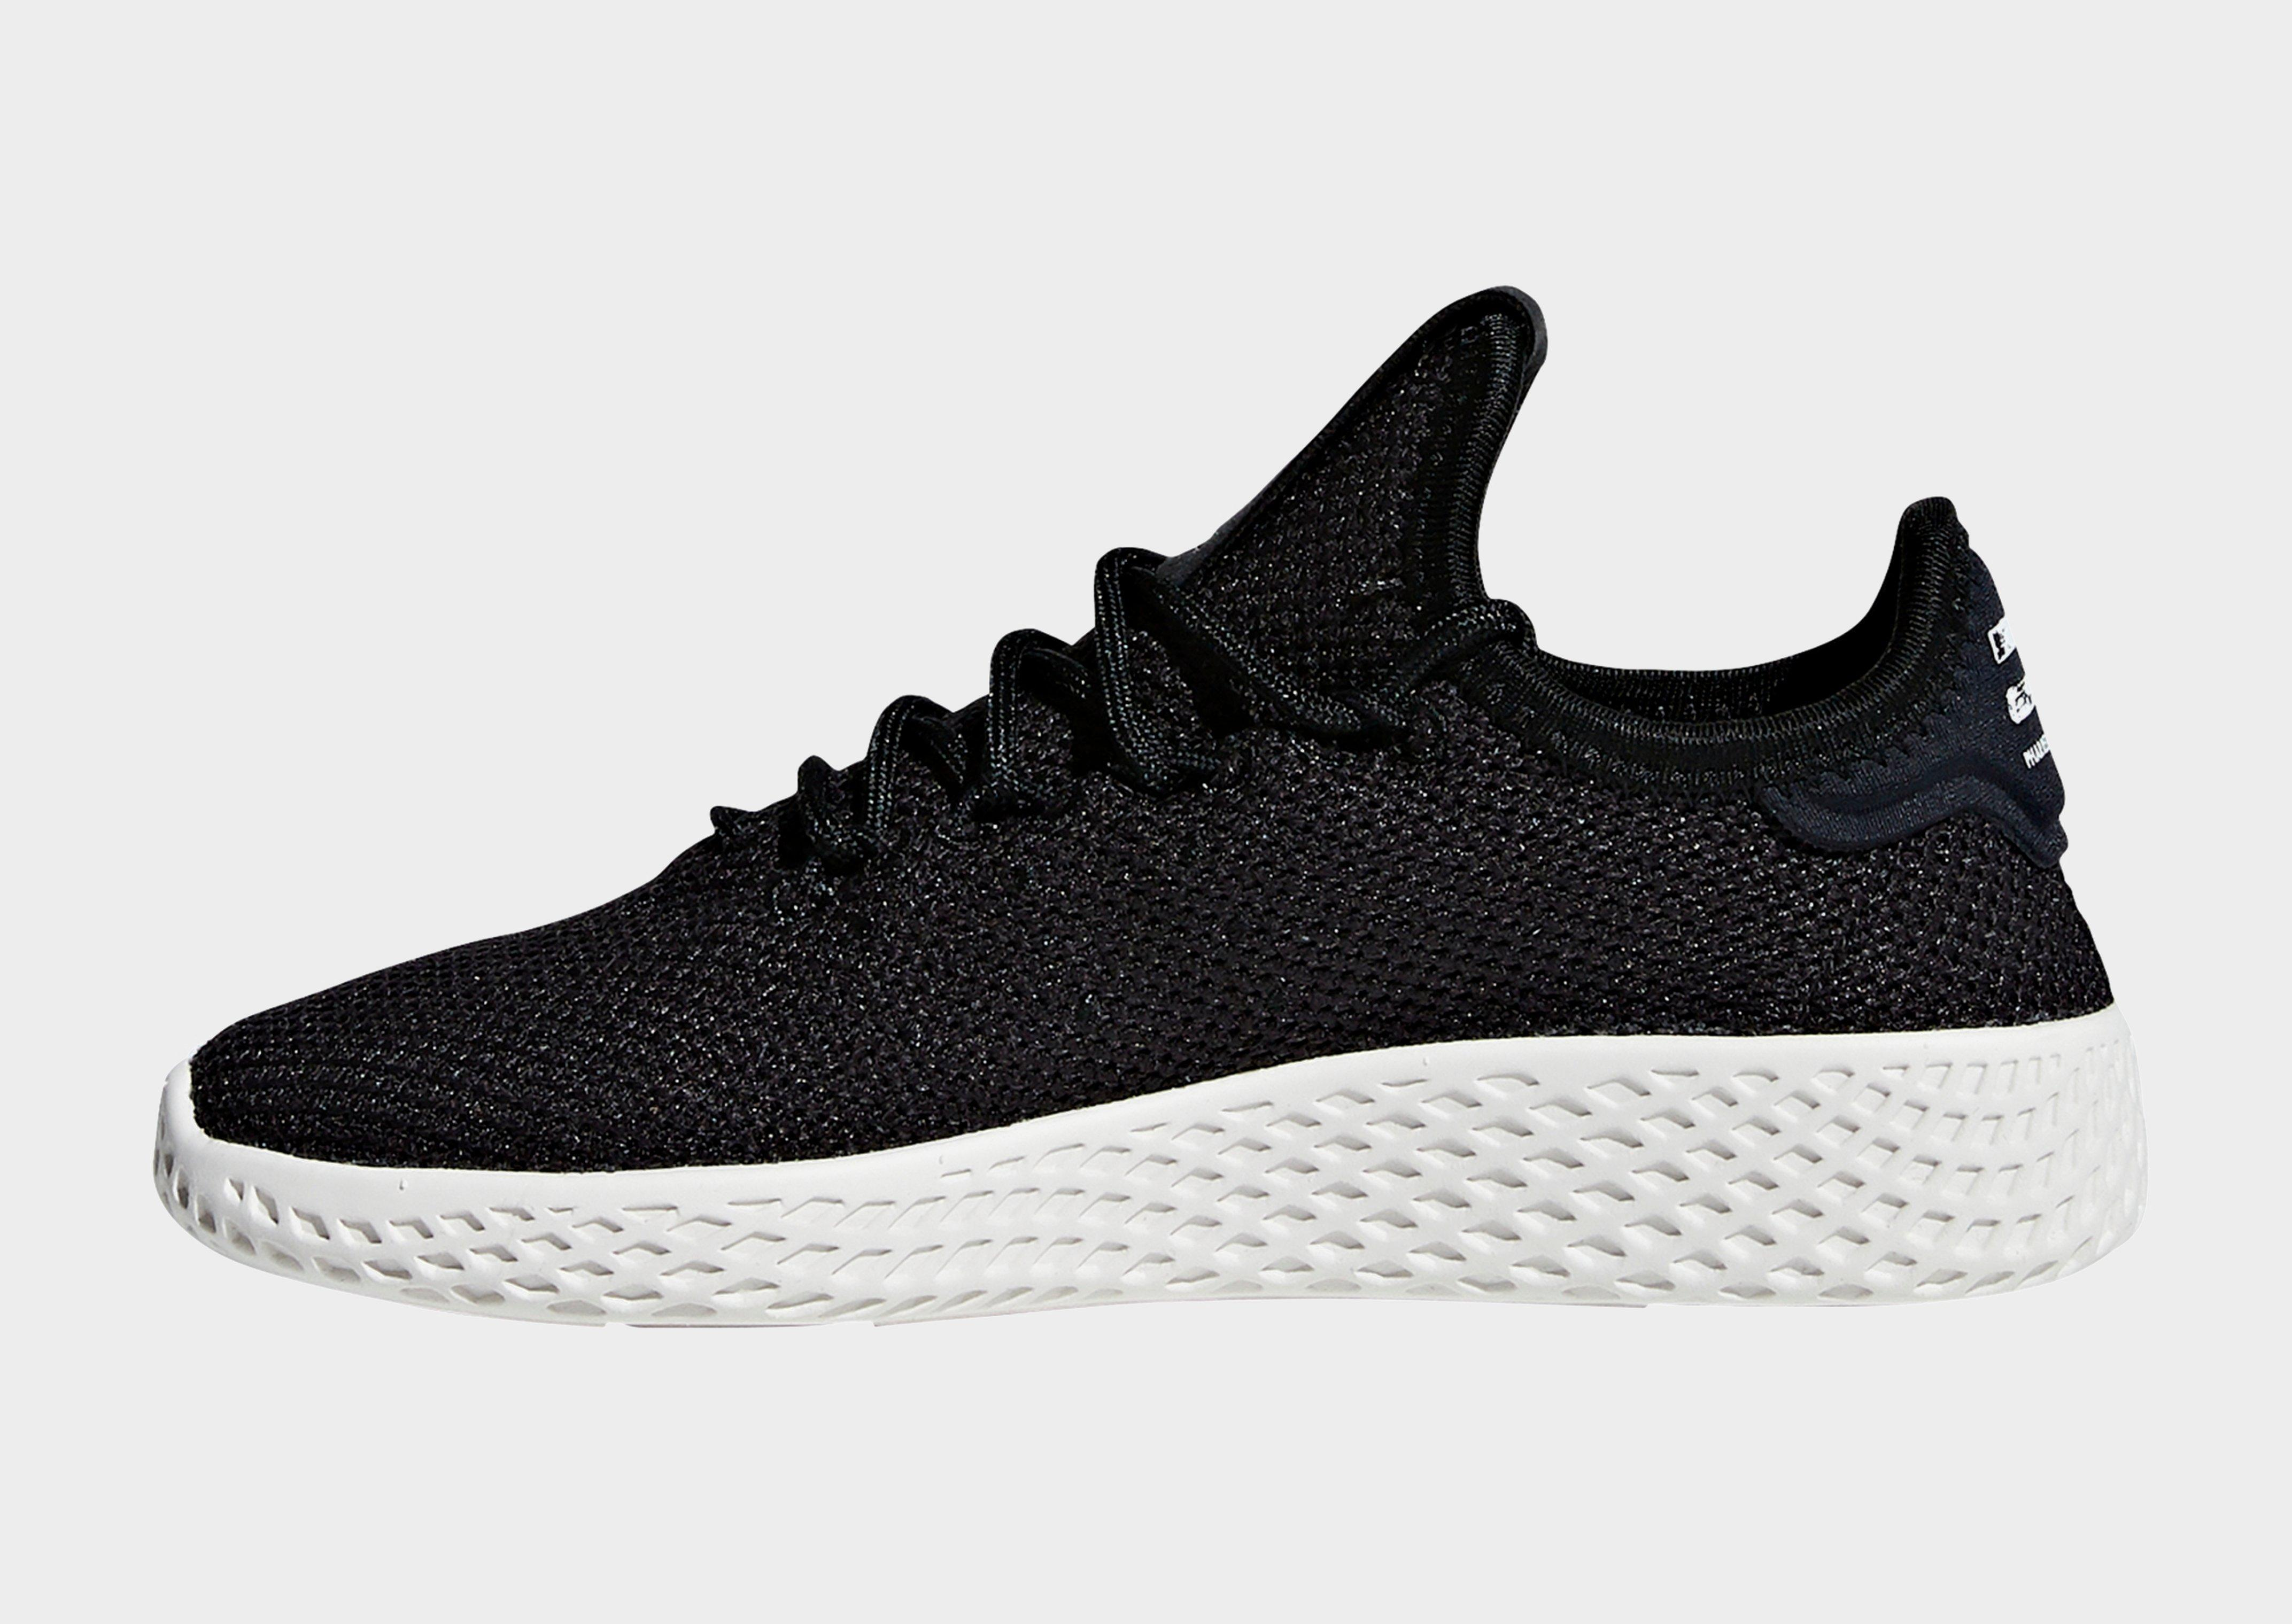 585d82acdc88 Lyst - Adidas Pharrell Williams Tennis Hu Shoes in Black for Men